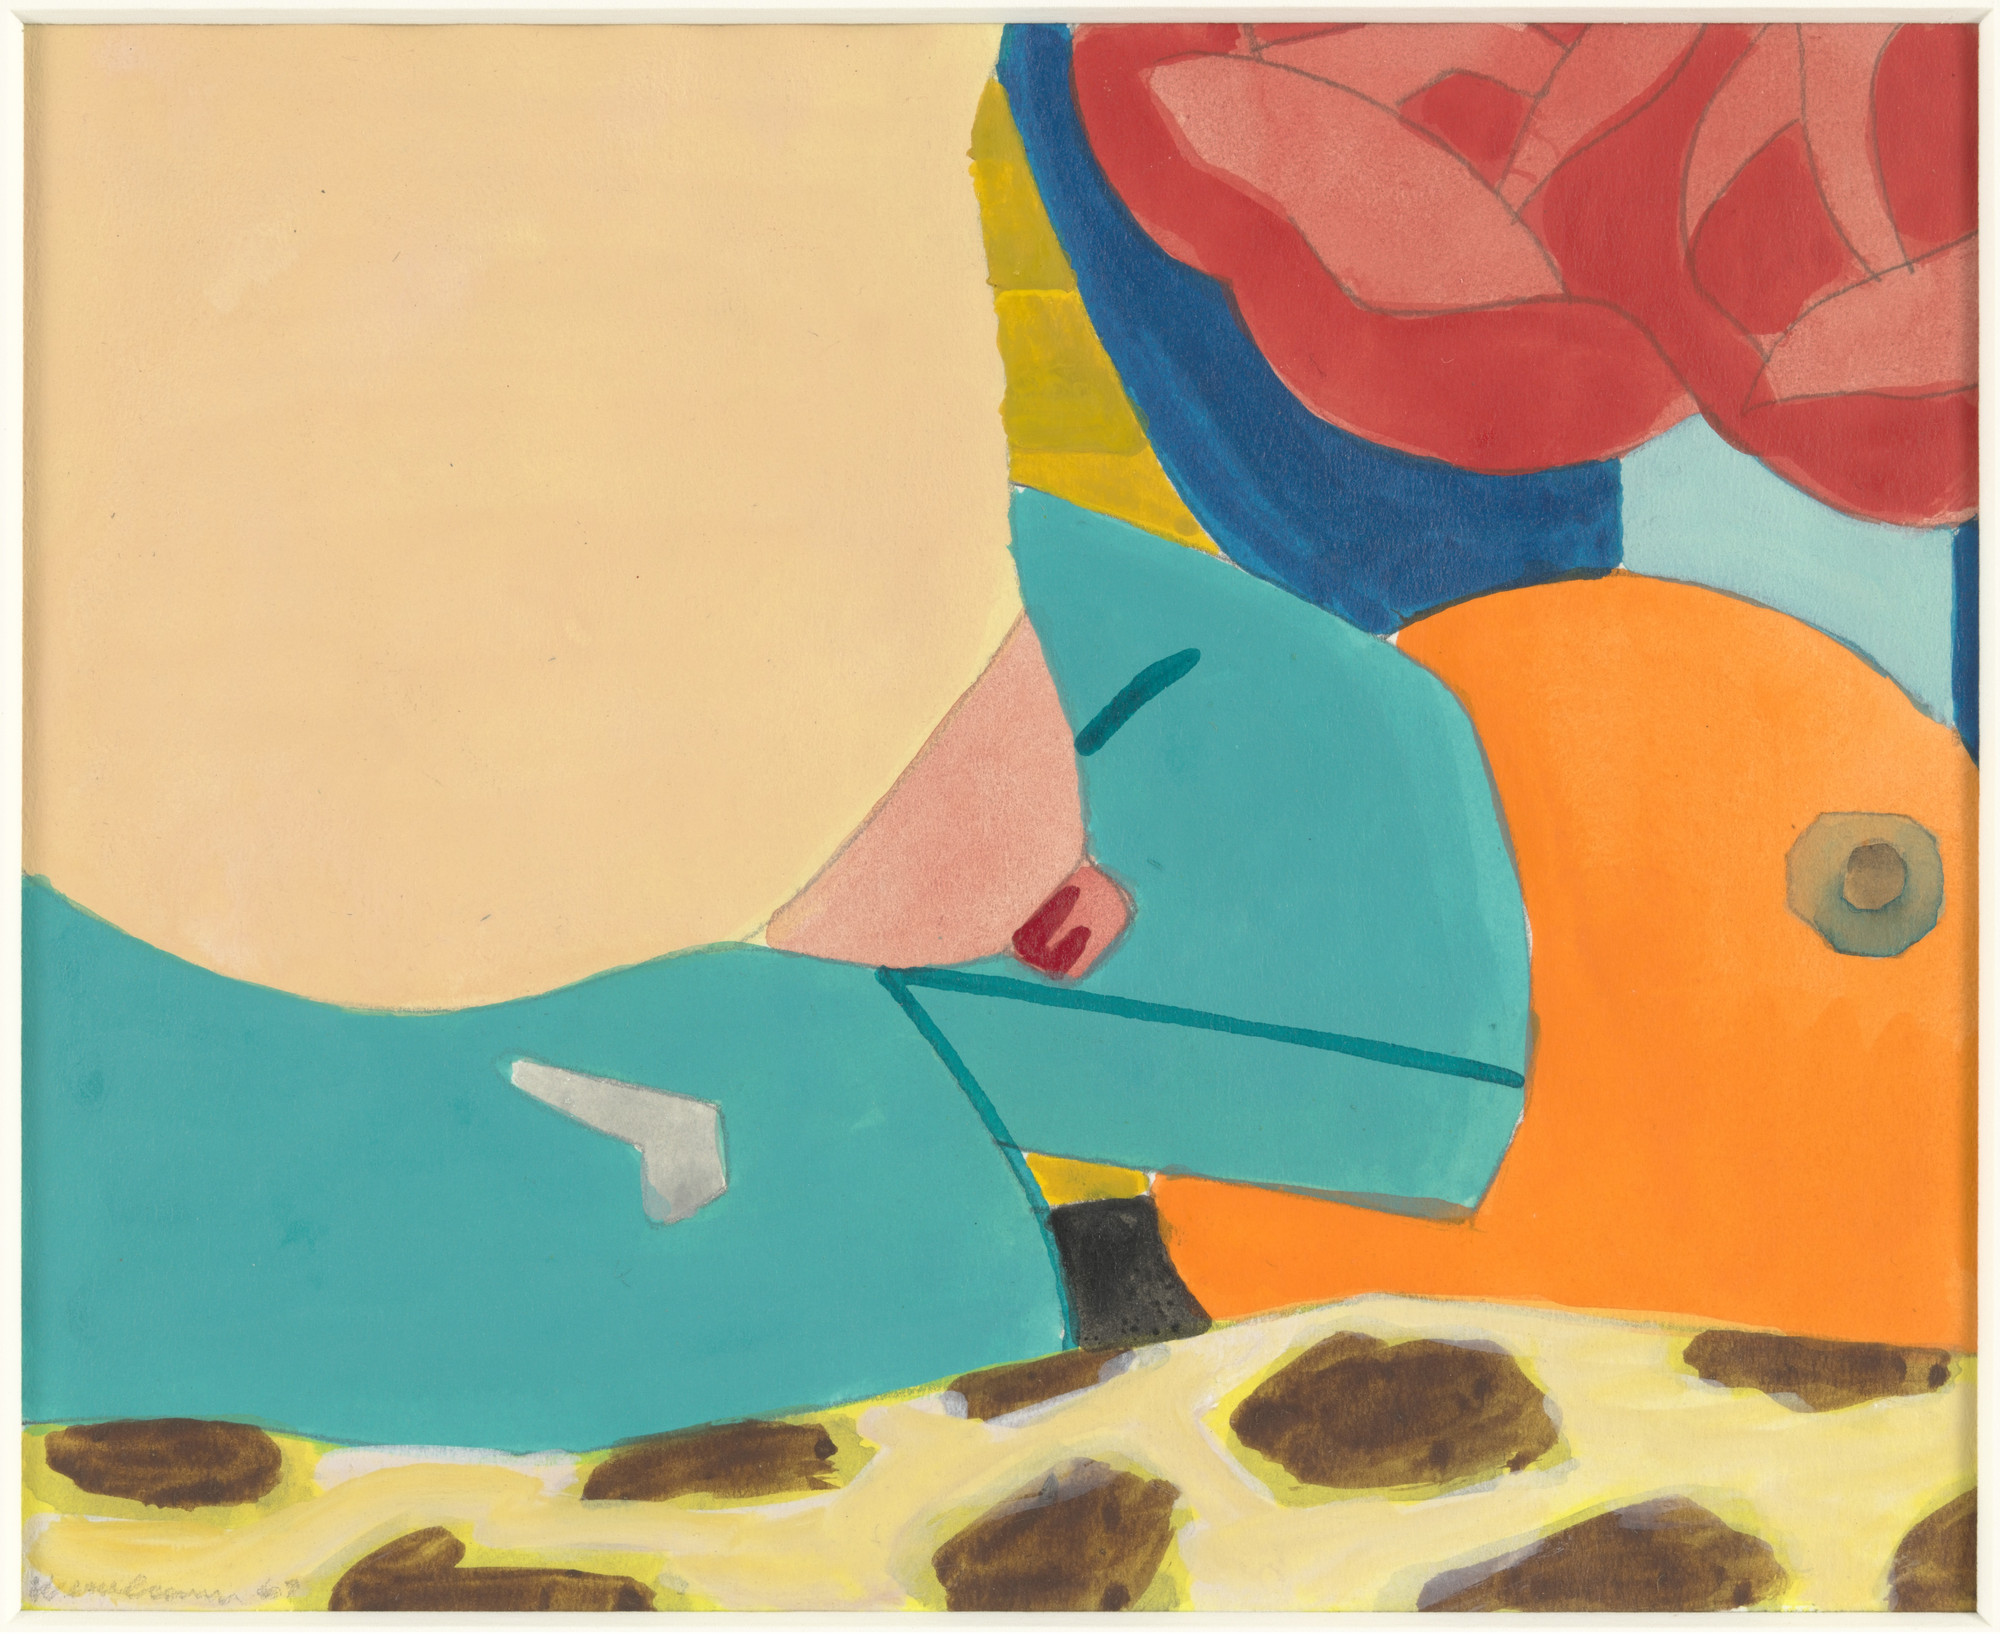 Tom Wesselmann. Study for Bedroom Painting #25. 1967